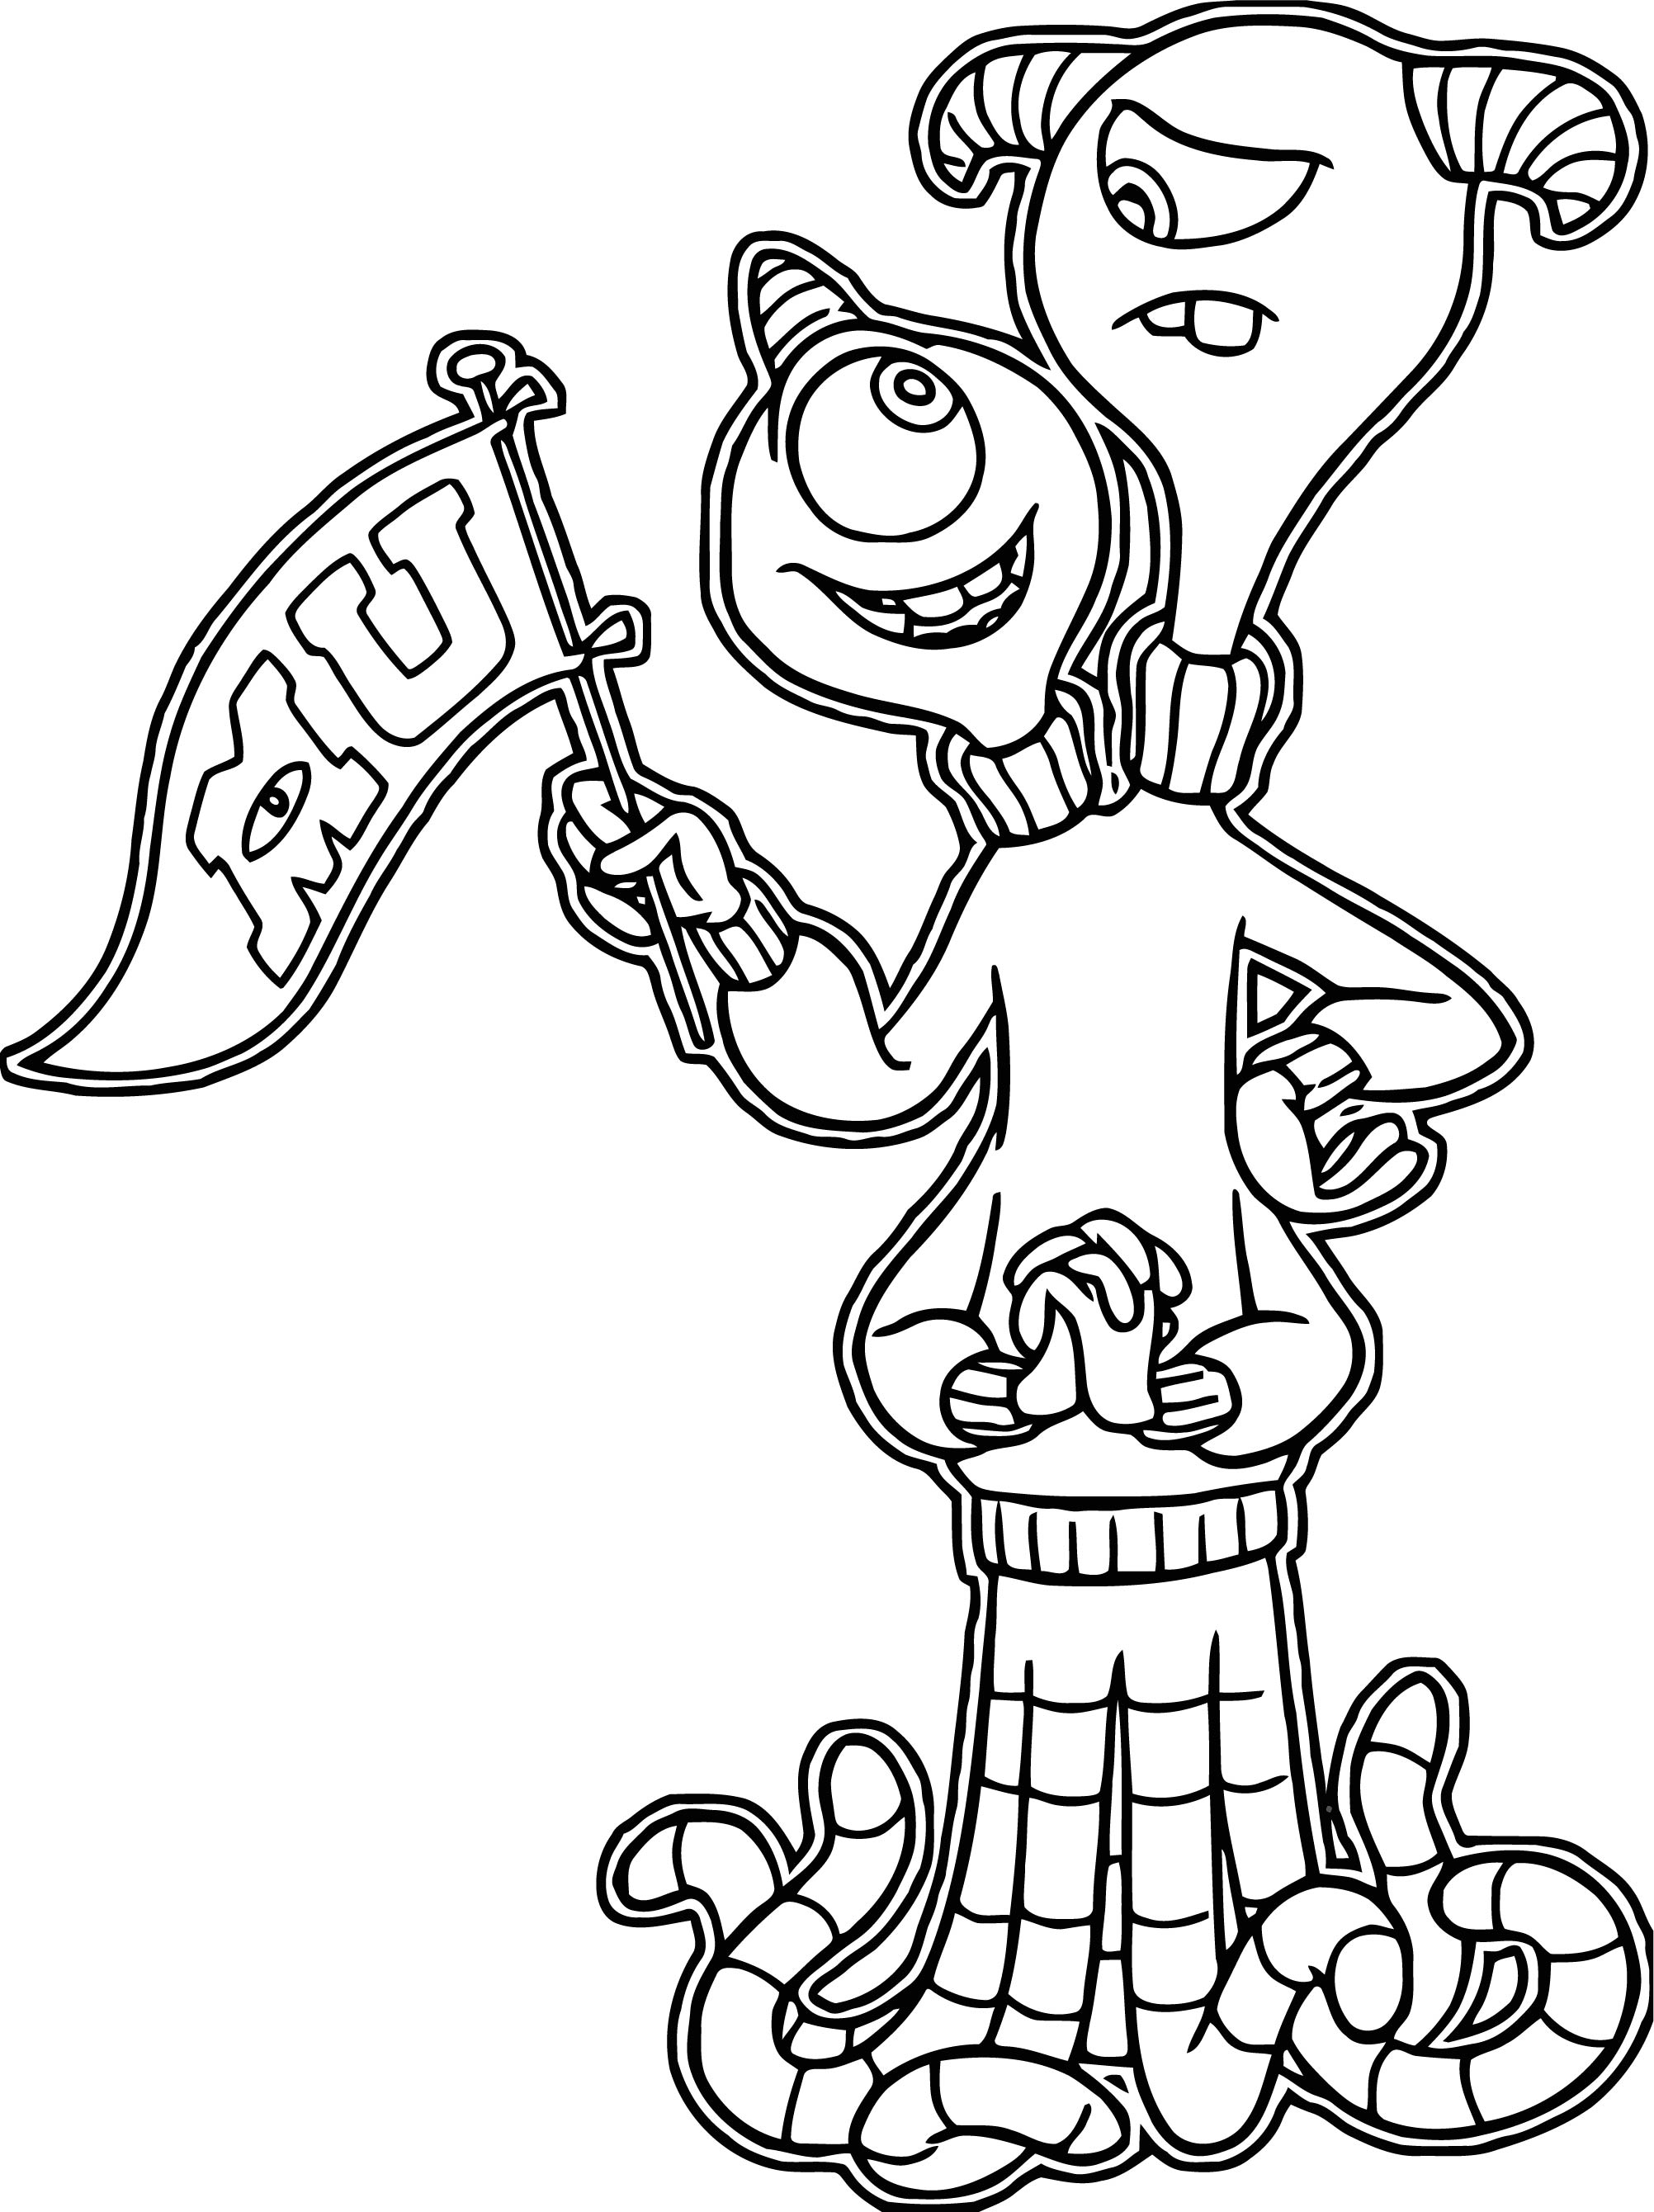 Terriand Terry Perry Coloring Page